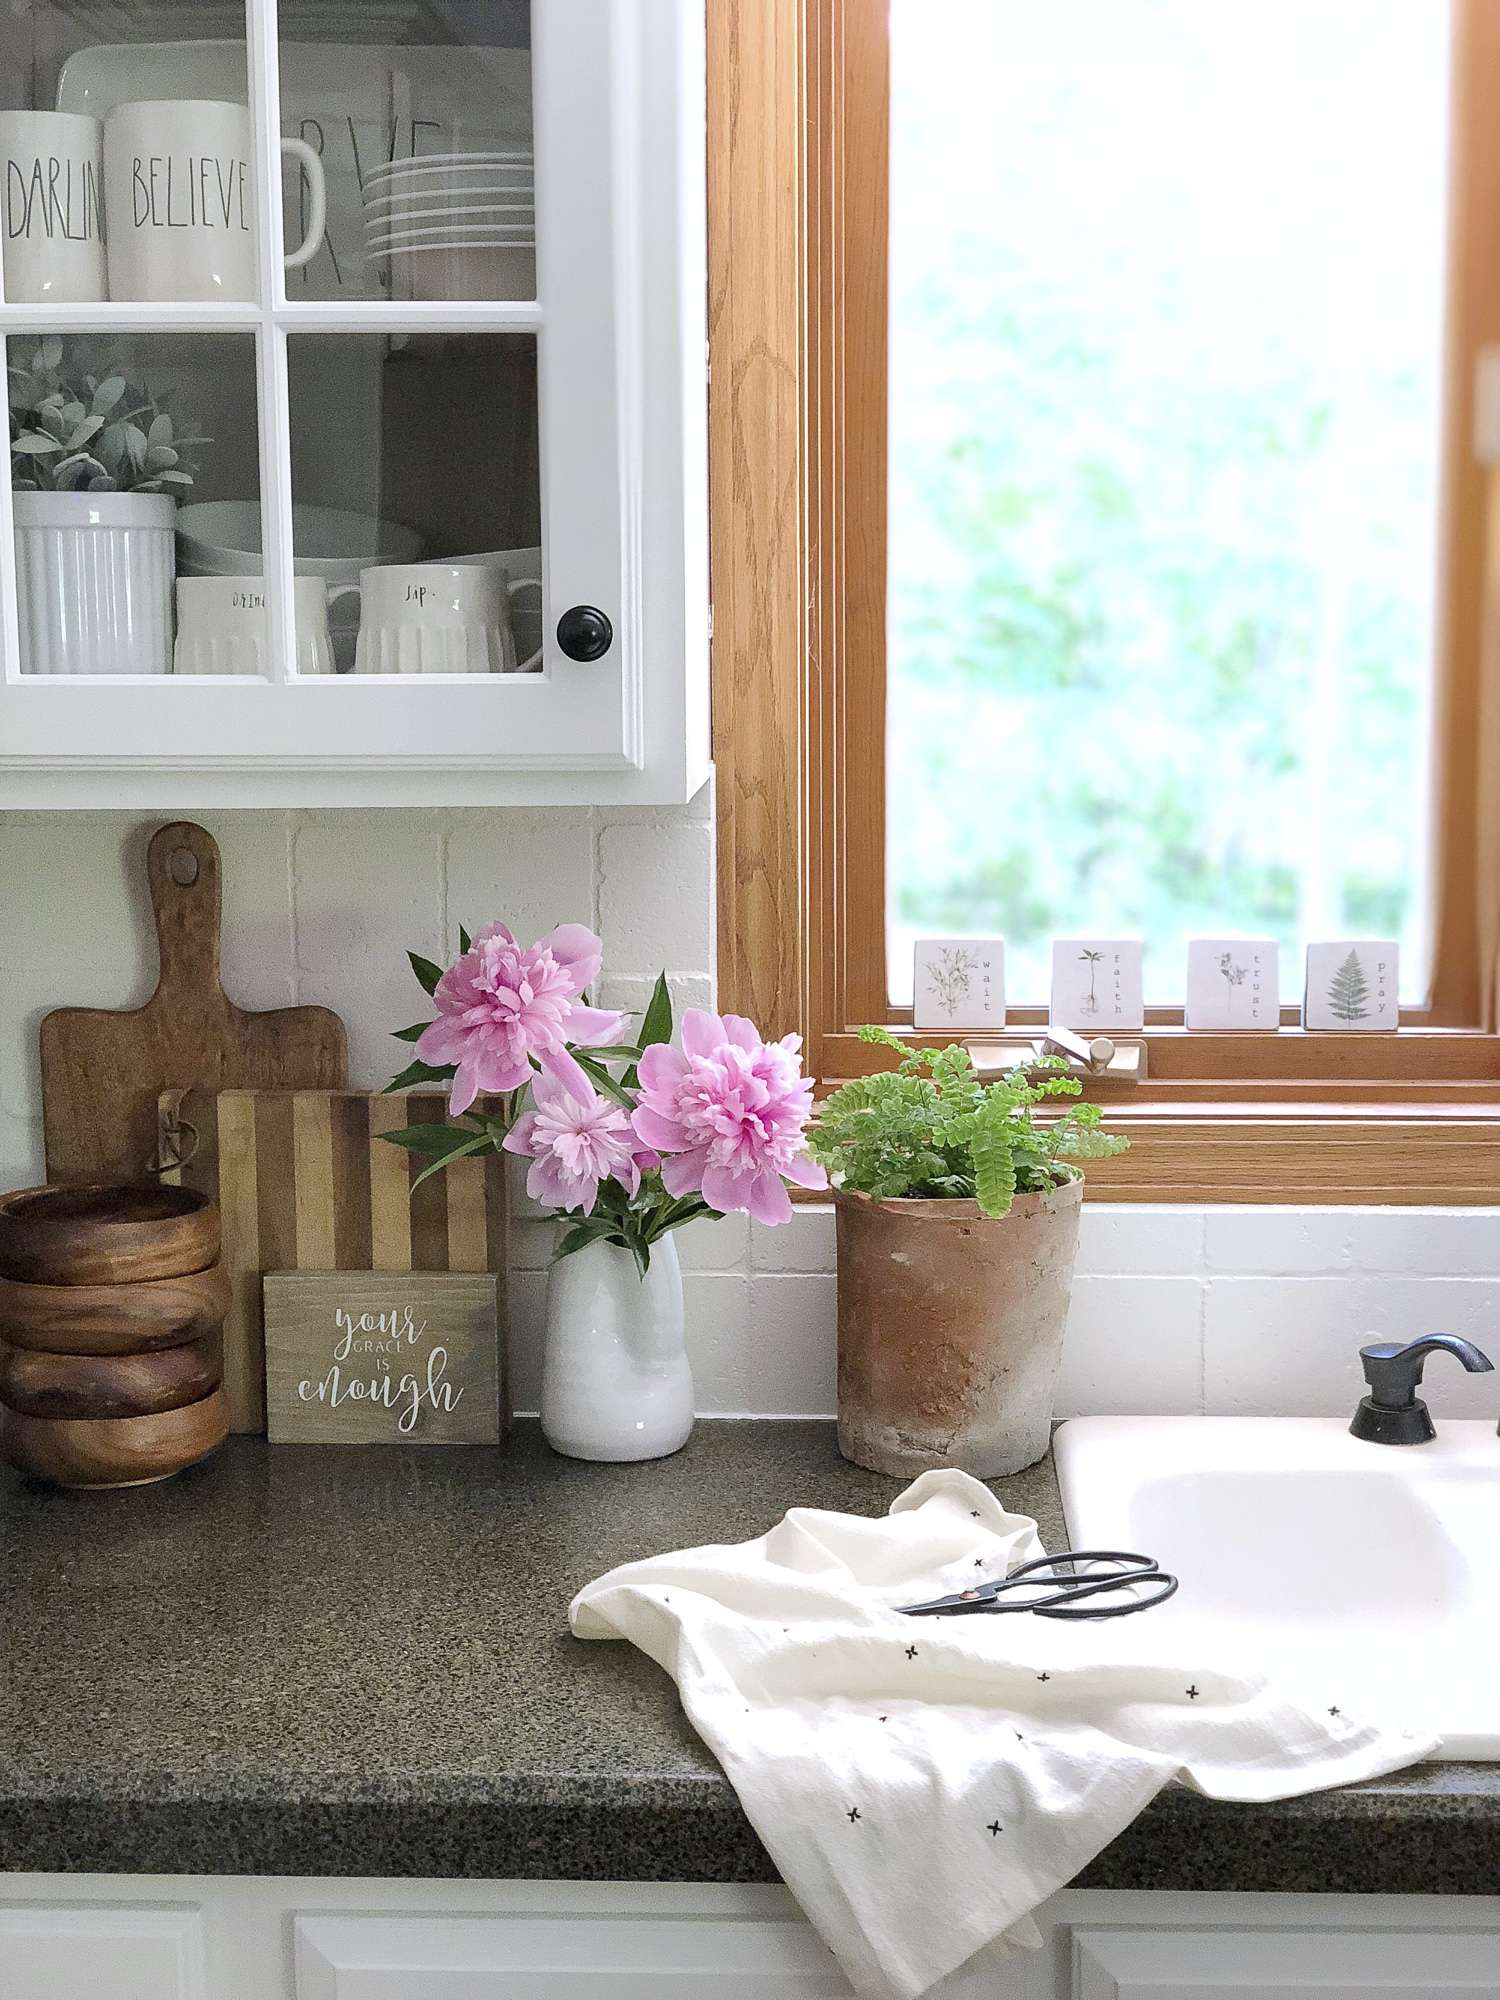 How To Paint A Tile Backsplash This Simple Tutorial Will